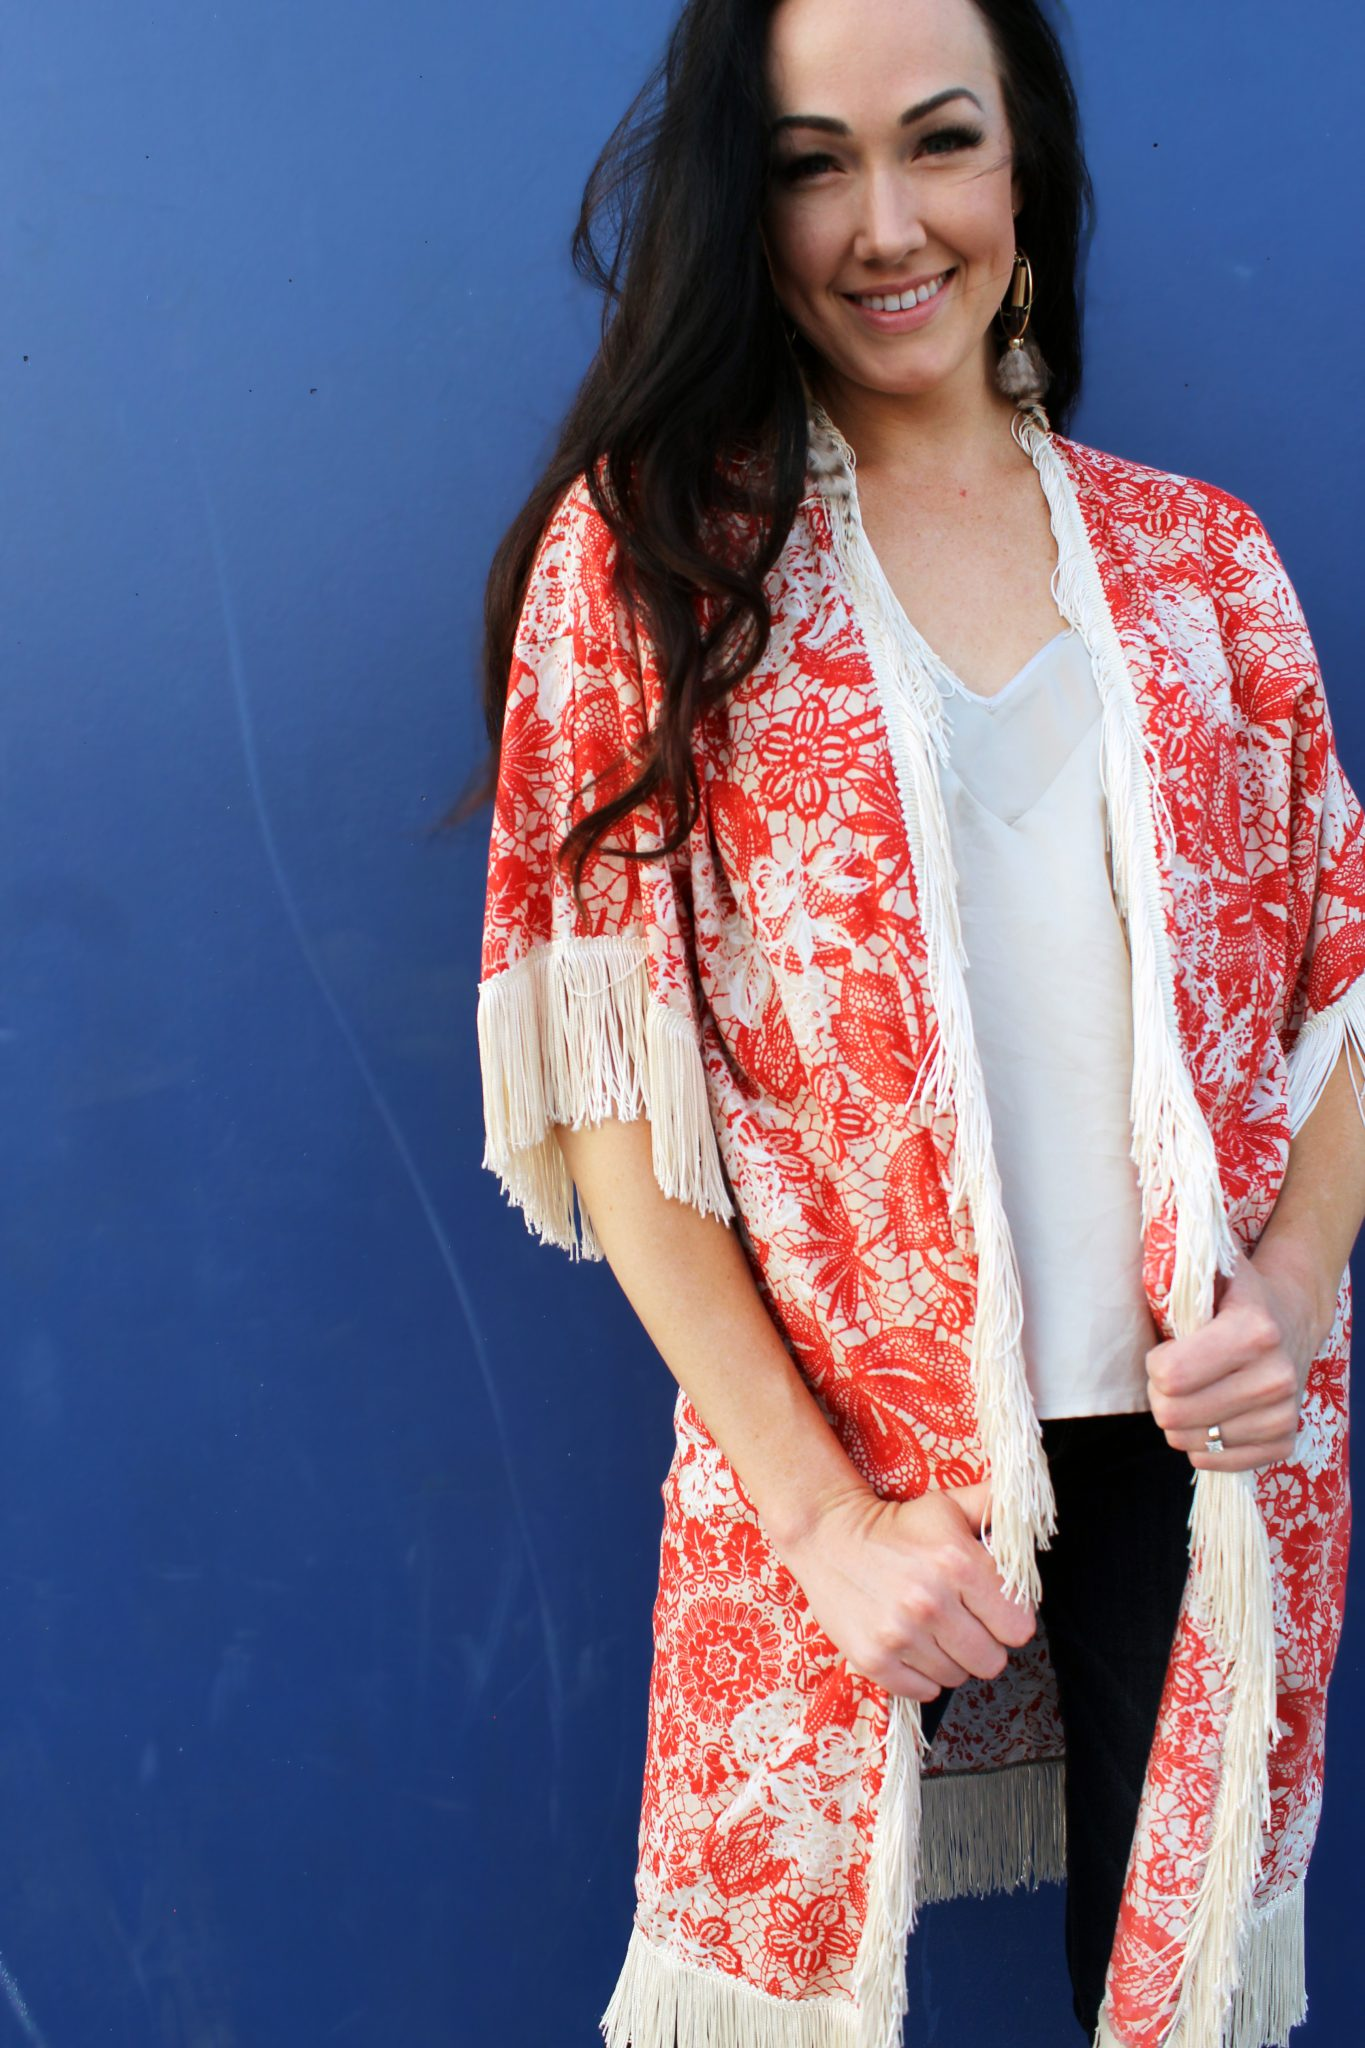 01df22d46f7 How To Make A DIY Kimono In 5 Simple Steps - Creative Fashion Blog